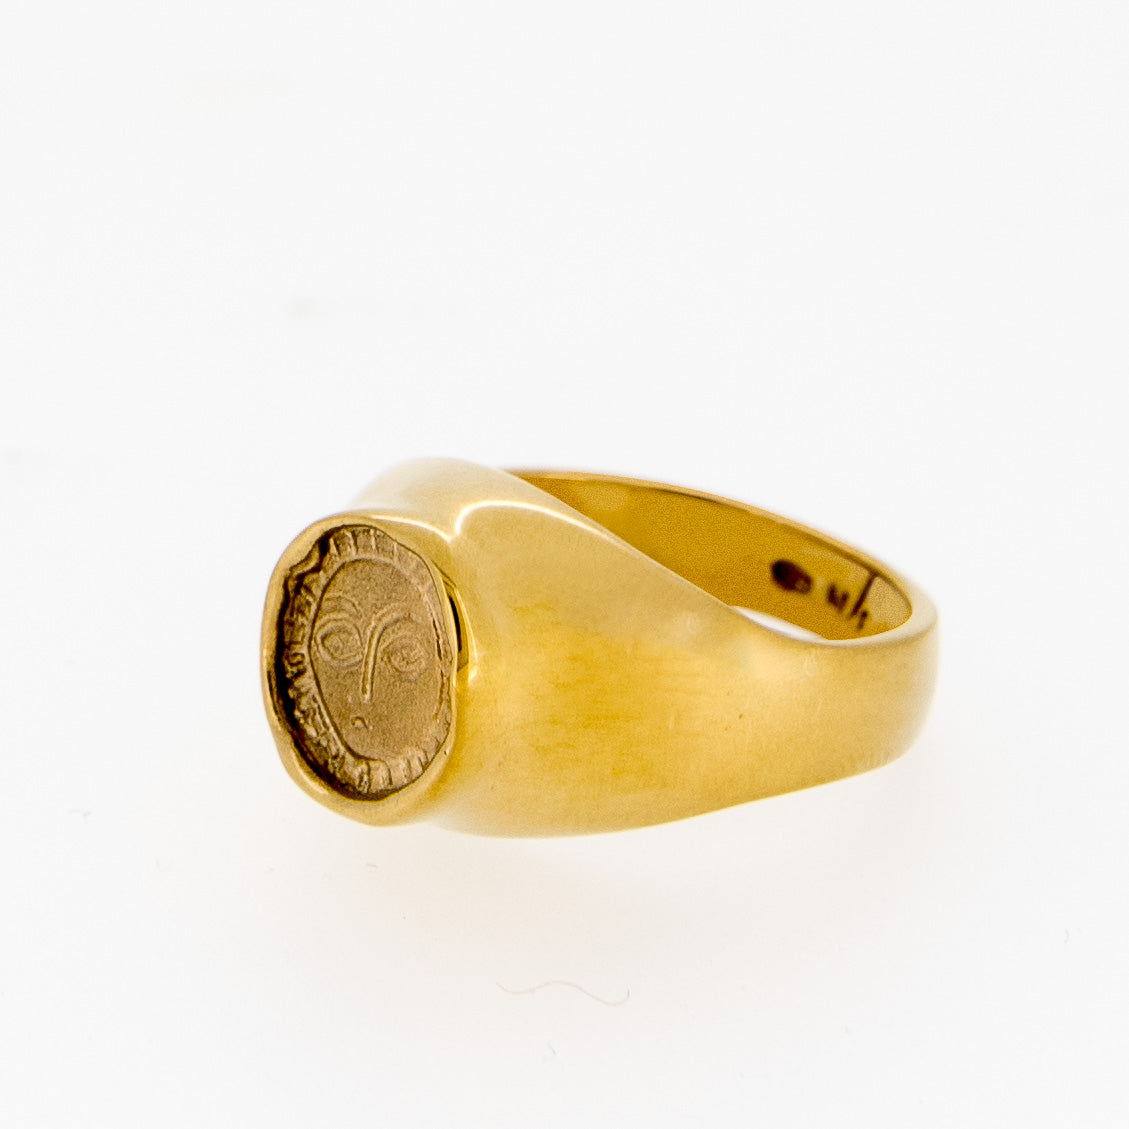 Gold Picasso Signet ring